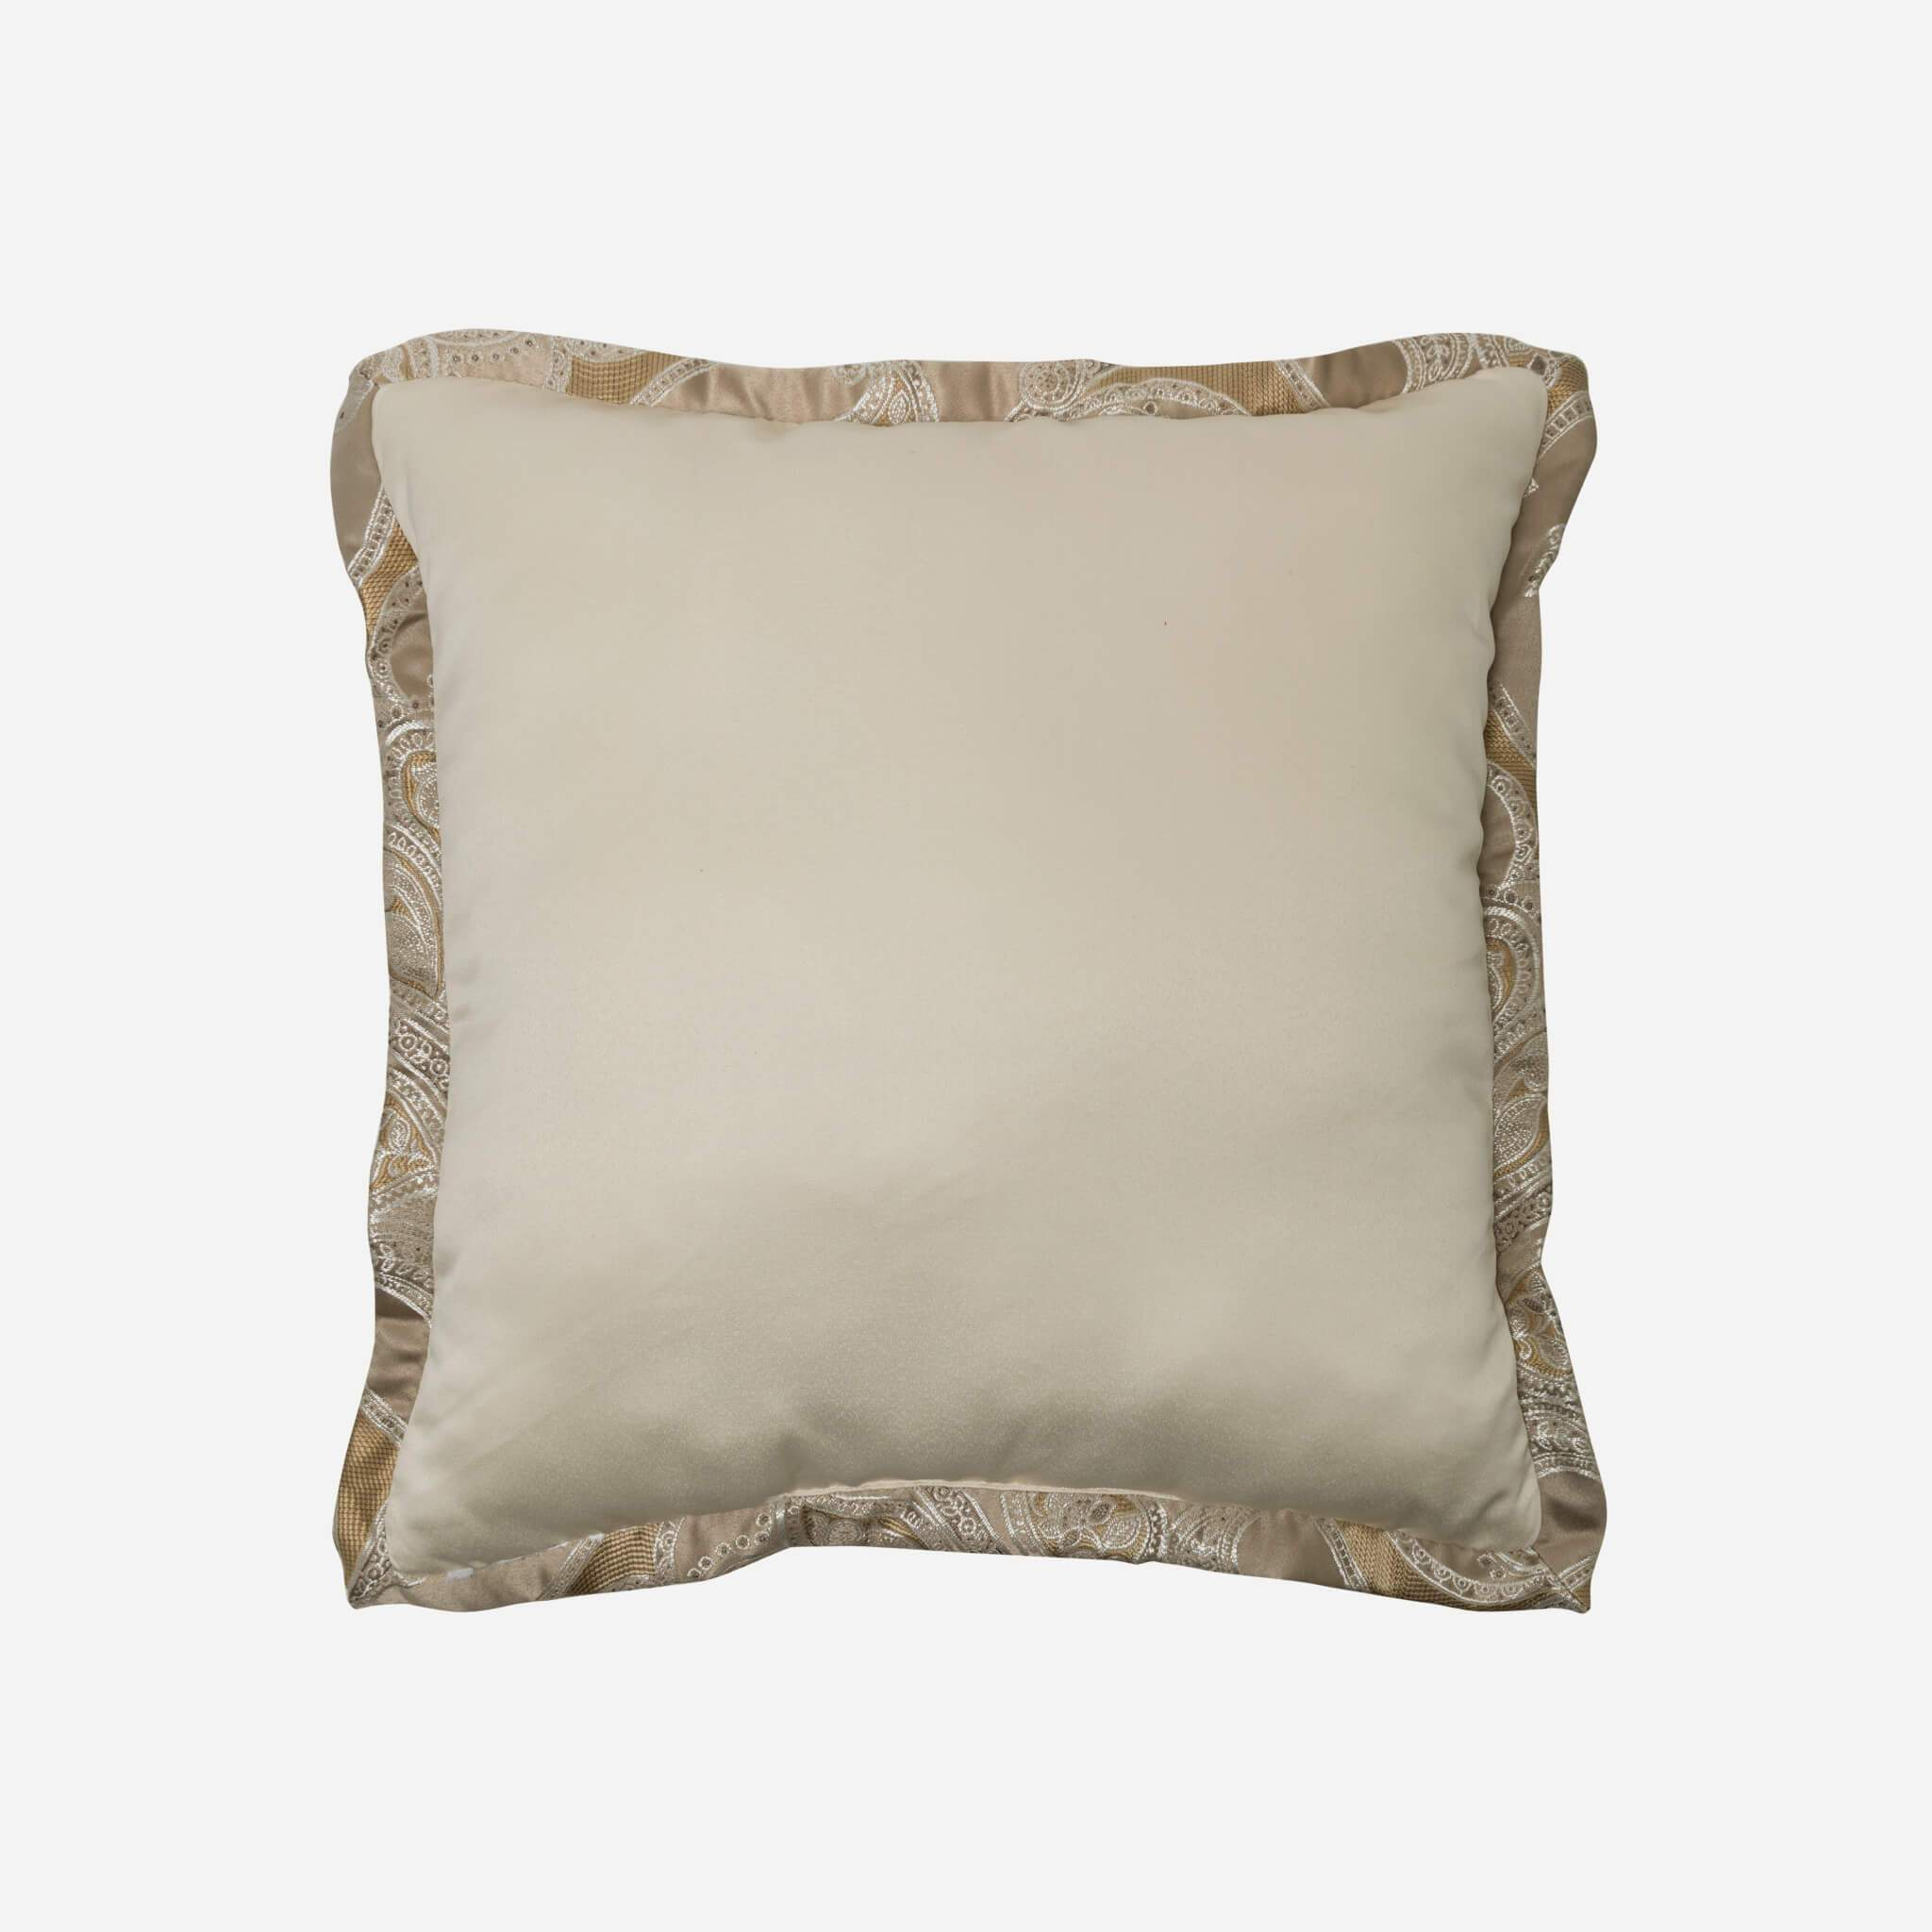 "Alexander 16"" x 16"" Reversible Fashion Pillow"